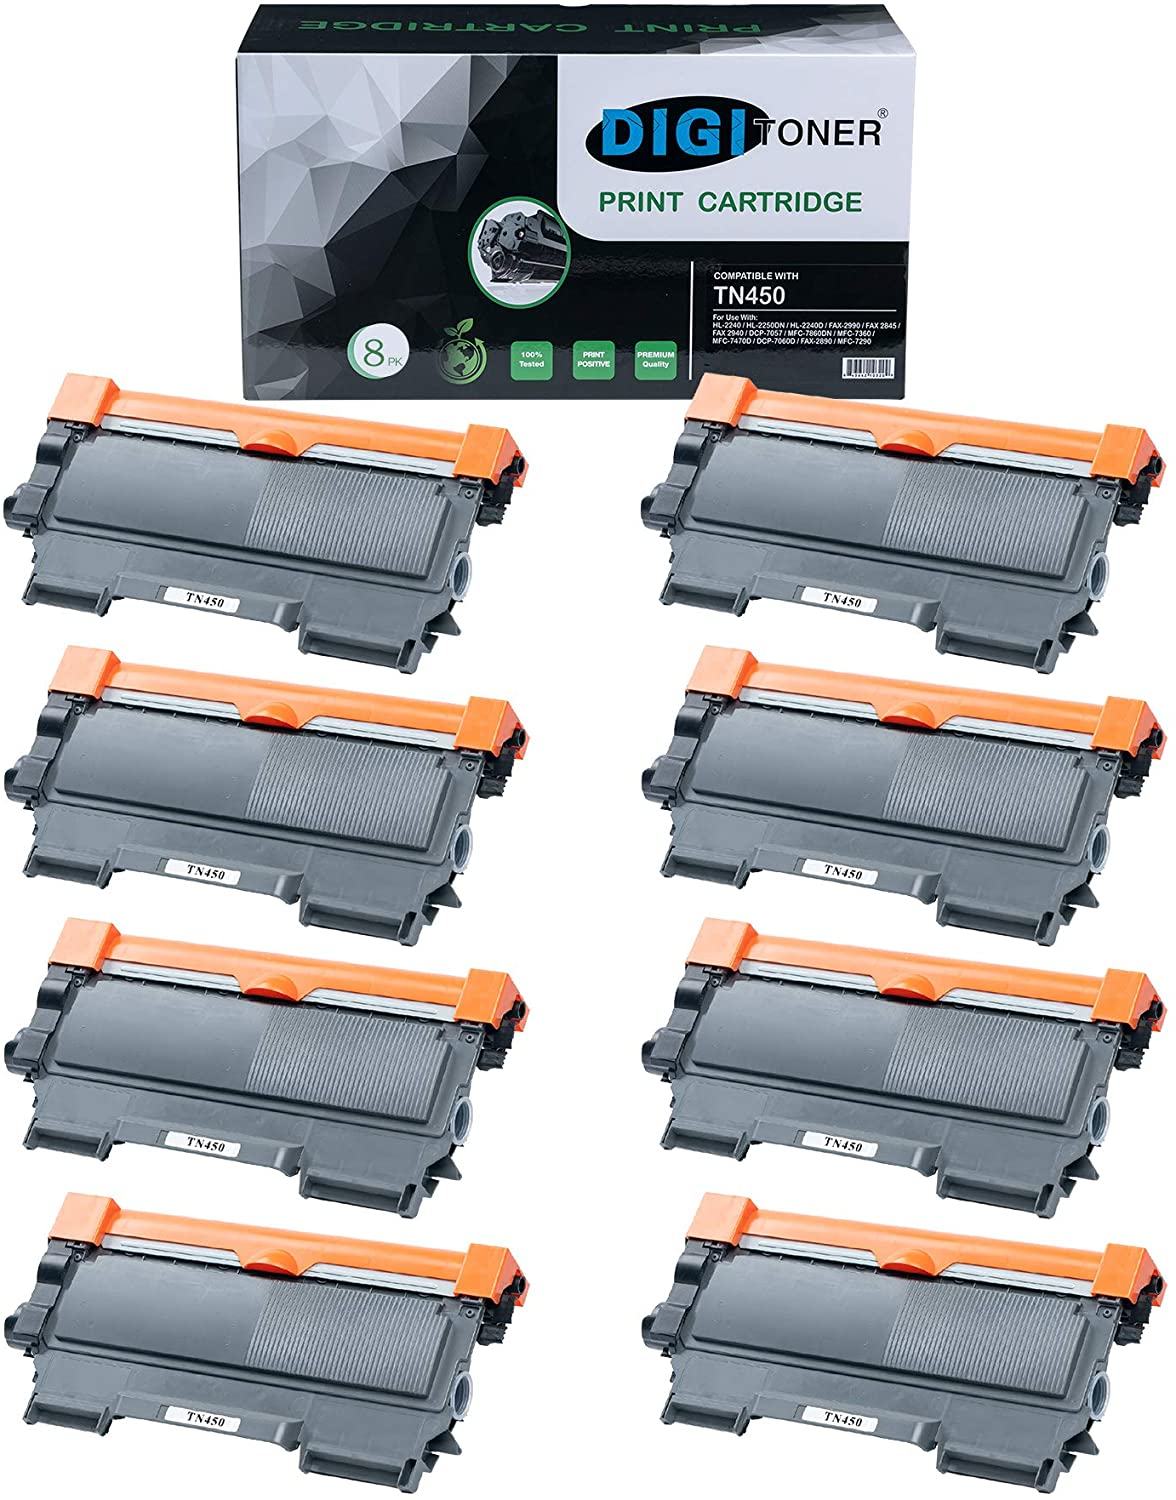 DIGITONER Compatible TN450 Toner Cartridge Replacement for Brother TN450 TN-450 Black, High Yield [8 Pack]